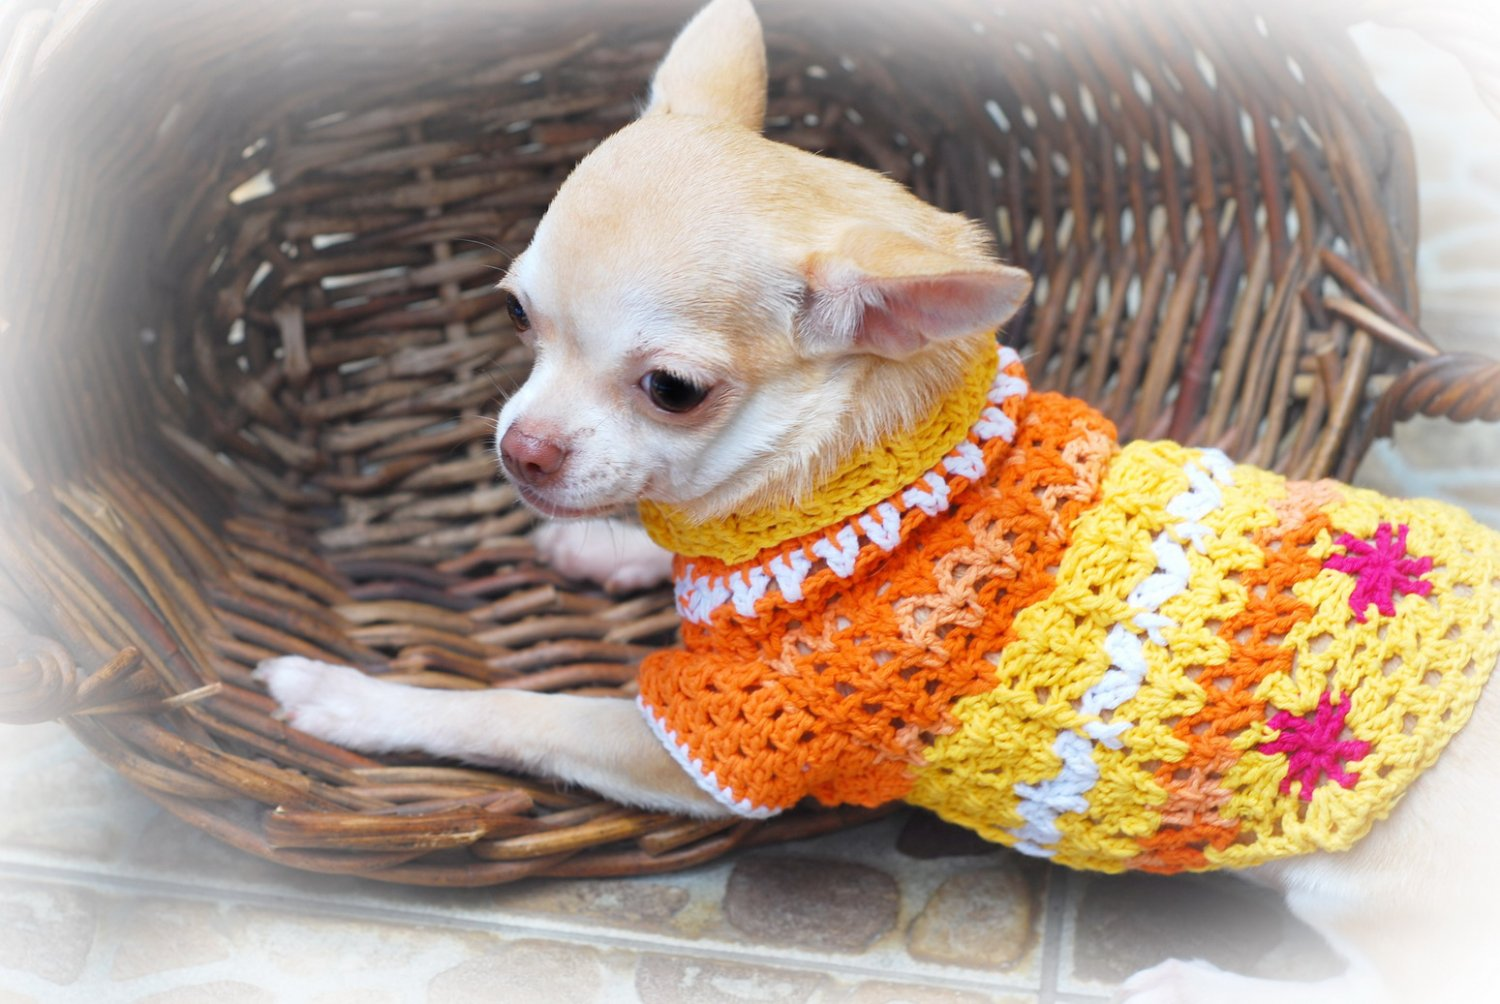 Handmade Hand Crochet Dog Clothes Puppy Sweater Myknitt D811 XXS